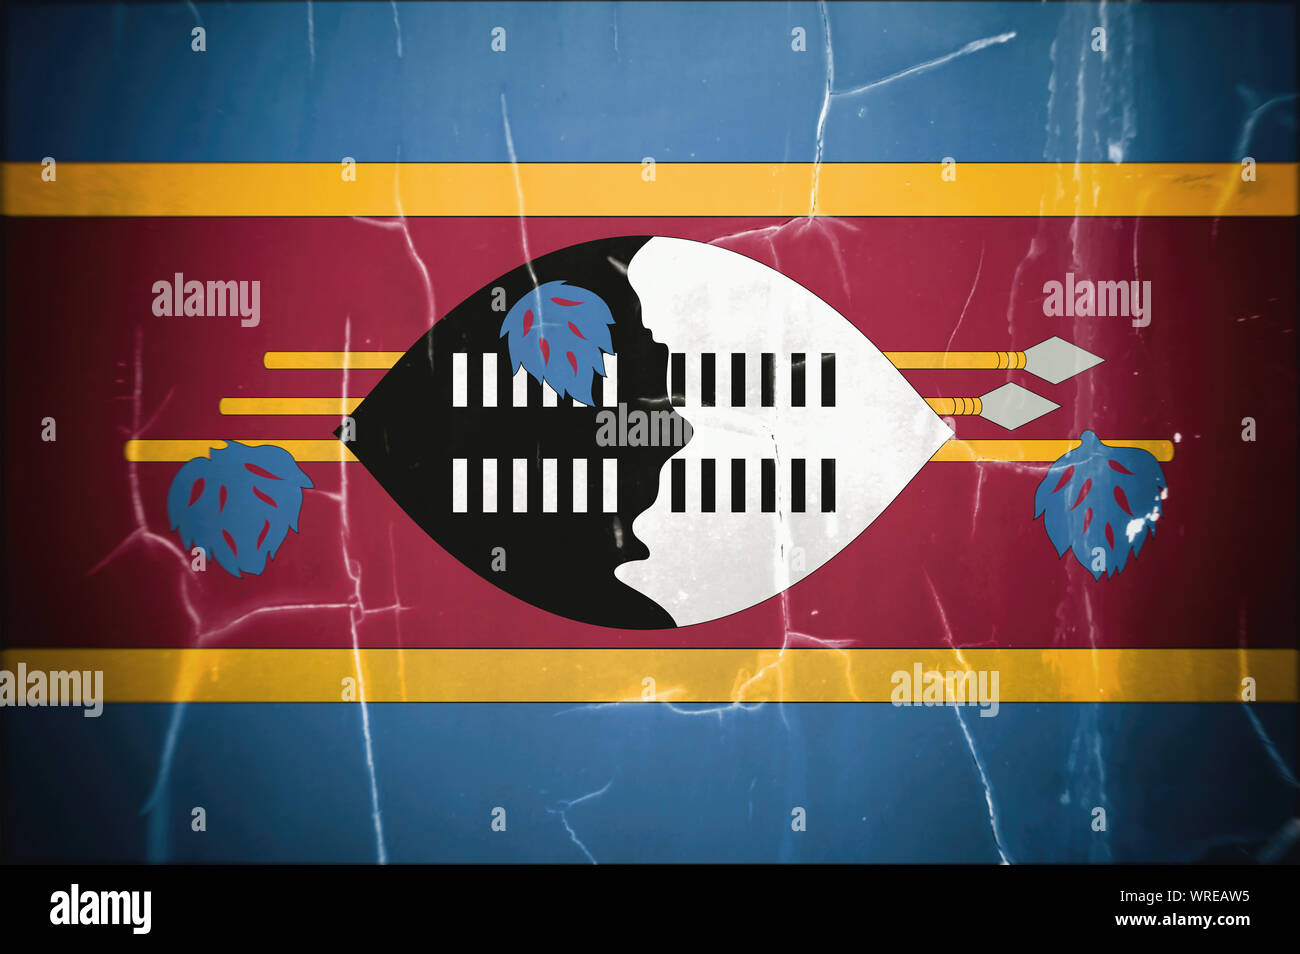 Flag of Eswatini (Swaziland), concrete background, dirty. Eswatini officially the Kingdom of Eswatini  and also known as Swaziland is a landlocked cou Stock Photo